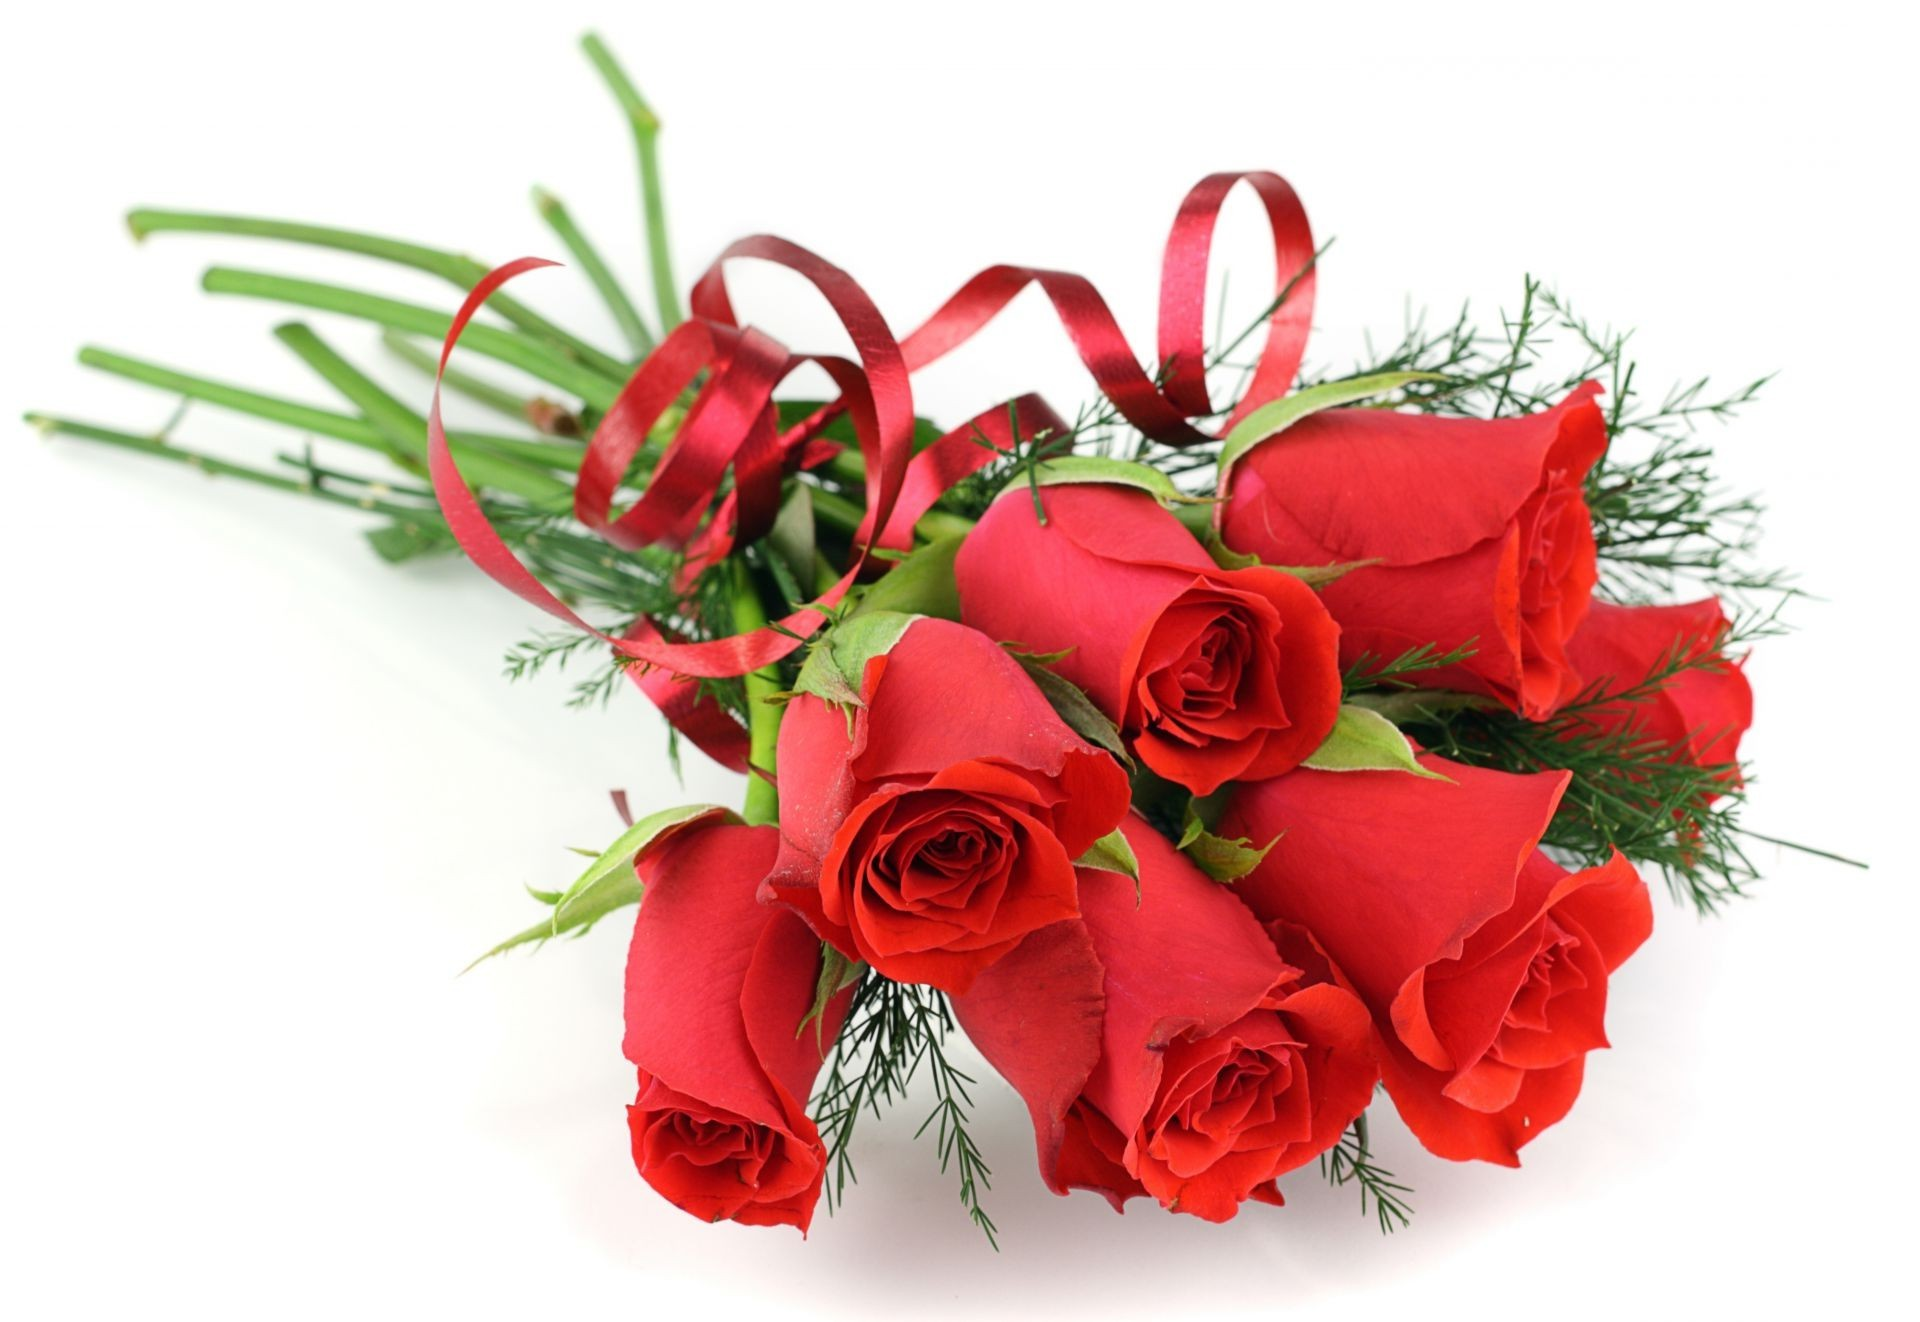 1920x1322 Bouquet of flowers white background ribbon red Roses. Android wallpapers  for free.